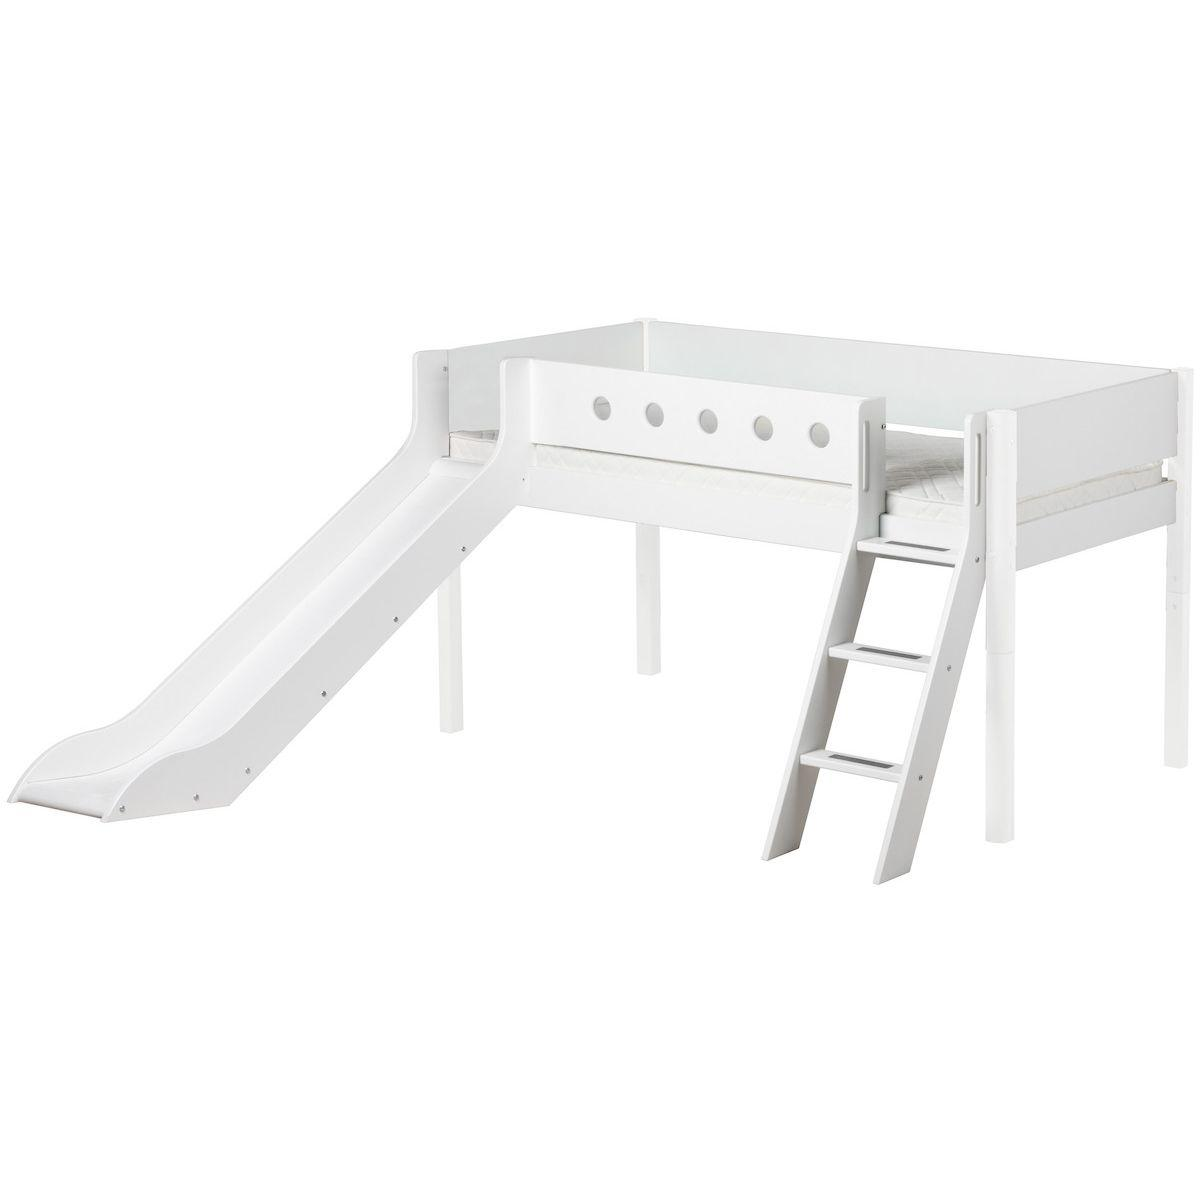 Cama media alta 90x190 WHITE Flexa escalera inclinada tobogán barrera y patas blancas